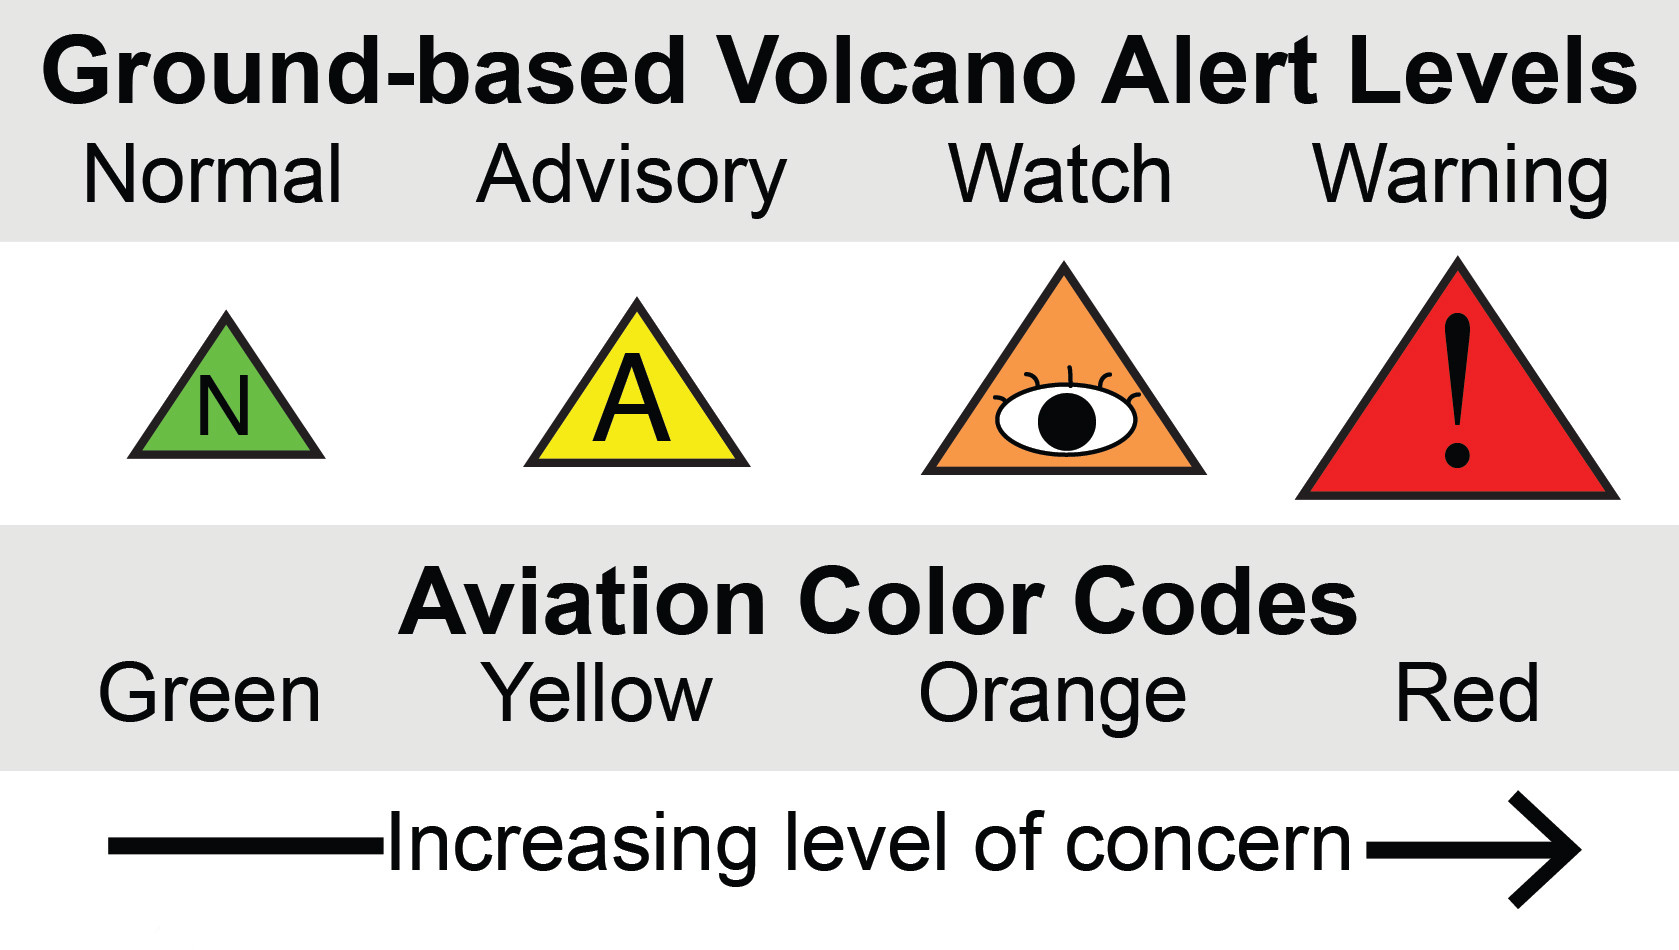 to what extent can volcanic hazards Small pumiceous pyroclastic flows (pumiceous pyroclastic flows of moderate  volume (1-10 km3) can extend for tens of kilometres from volcanoes.